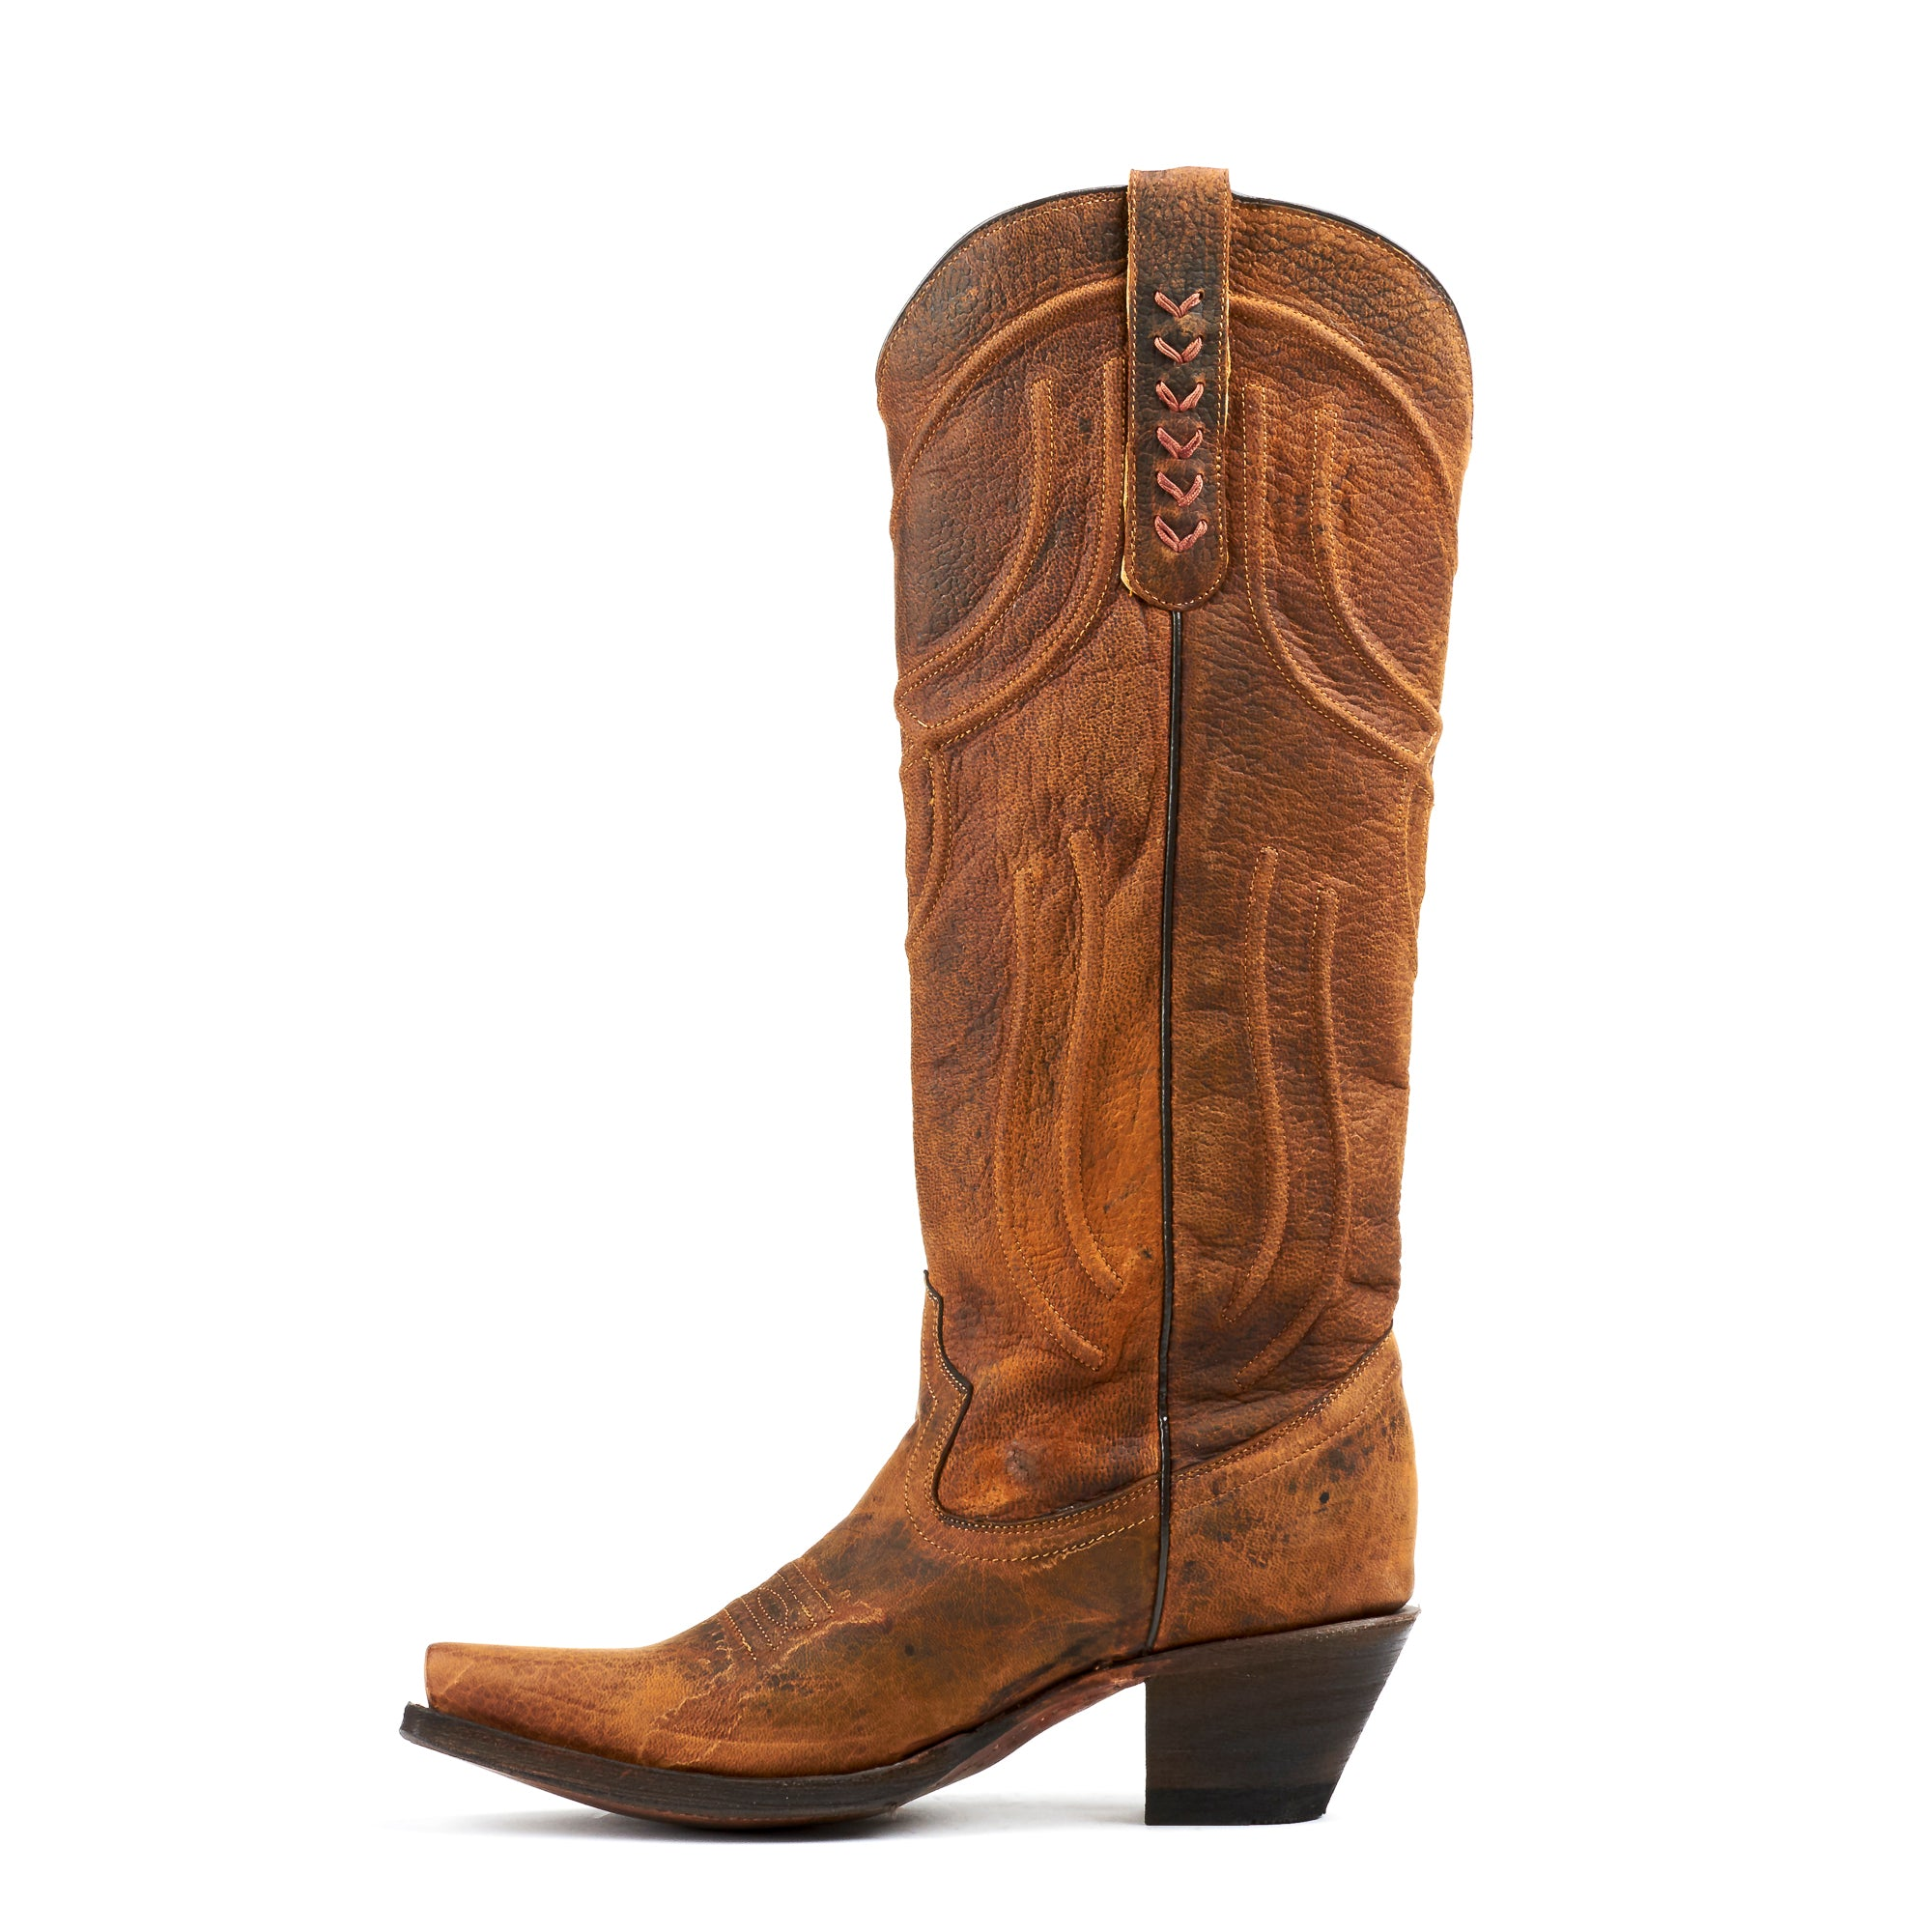 5f4573eb3b6 Women's Corral Boots Brown Woven #R1418 – Allens Boots